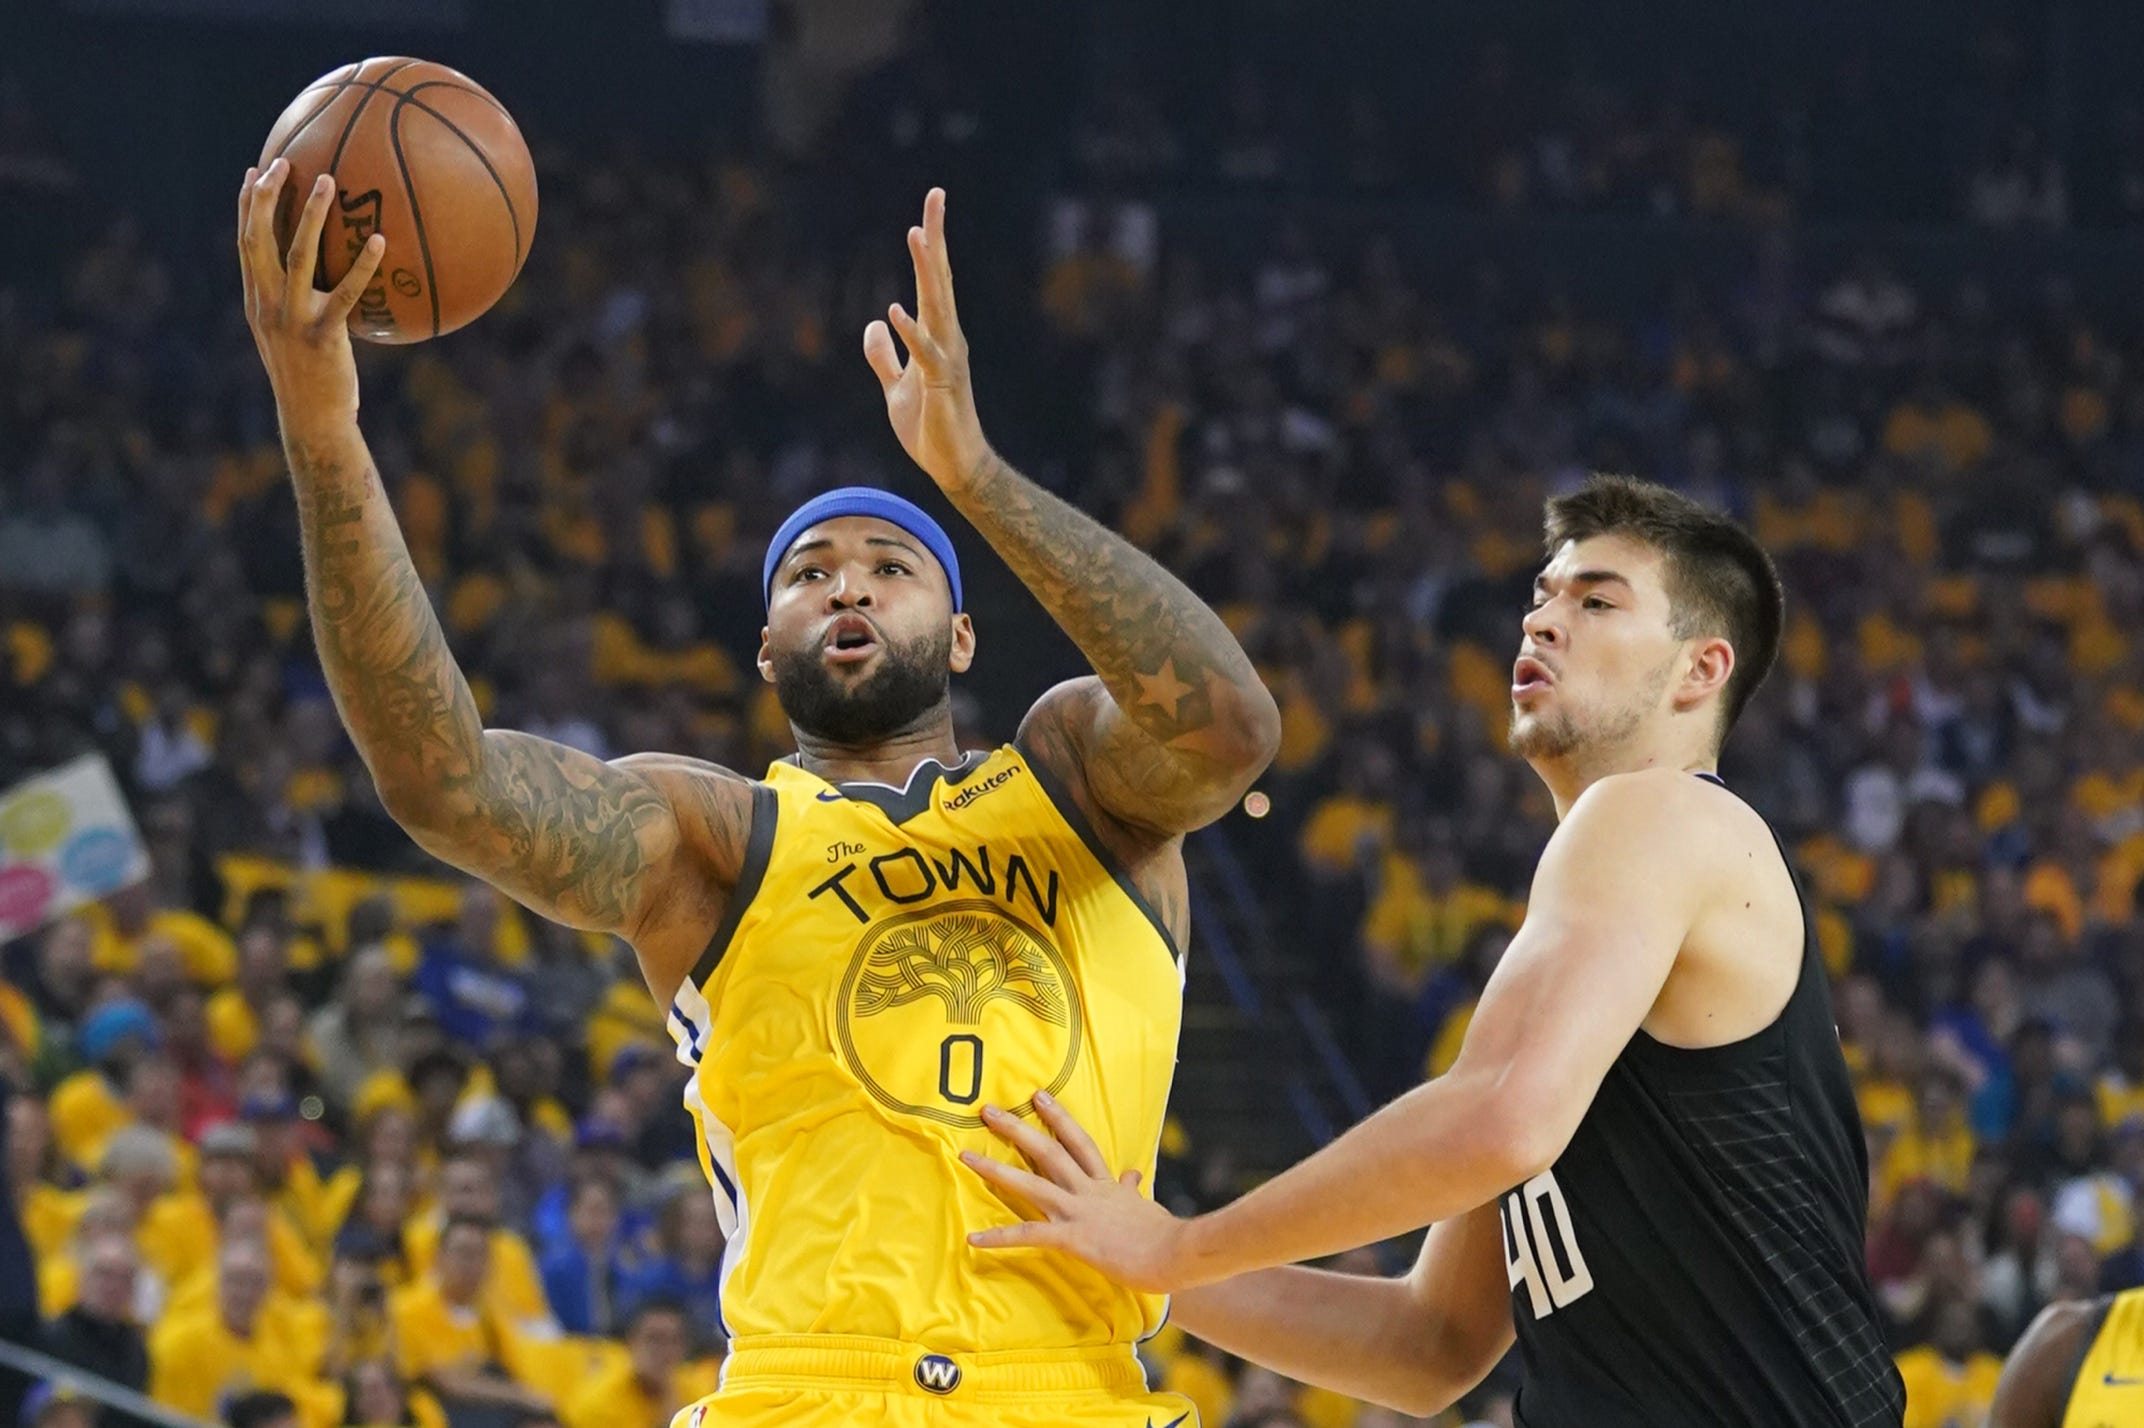 Warriors star DeMarcus Cousins won't need surgery on torn left quad, but unlikely to return for NBA playoffs